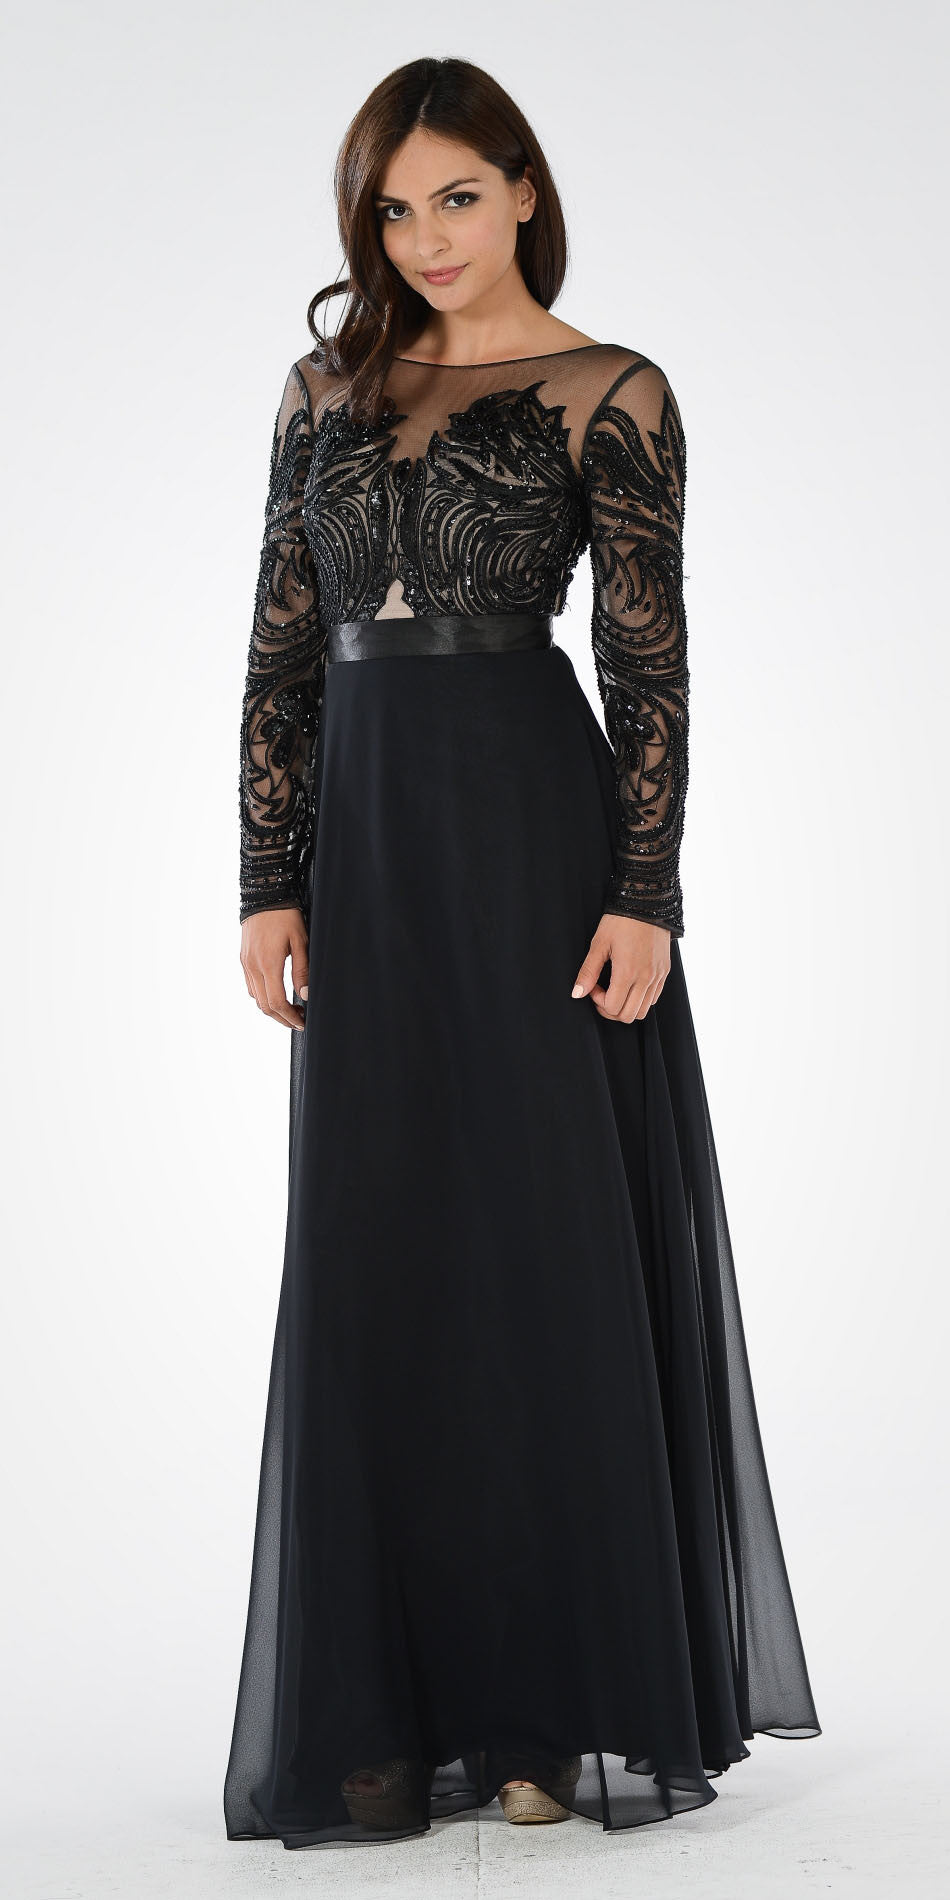 249a0cacfd8ab Black Long Sleeves Illusion Beaded Bodice A-line Formal Dress. Tap to expand